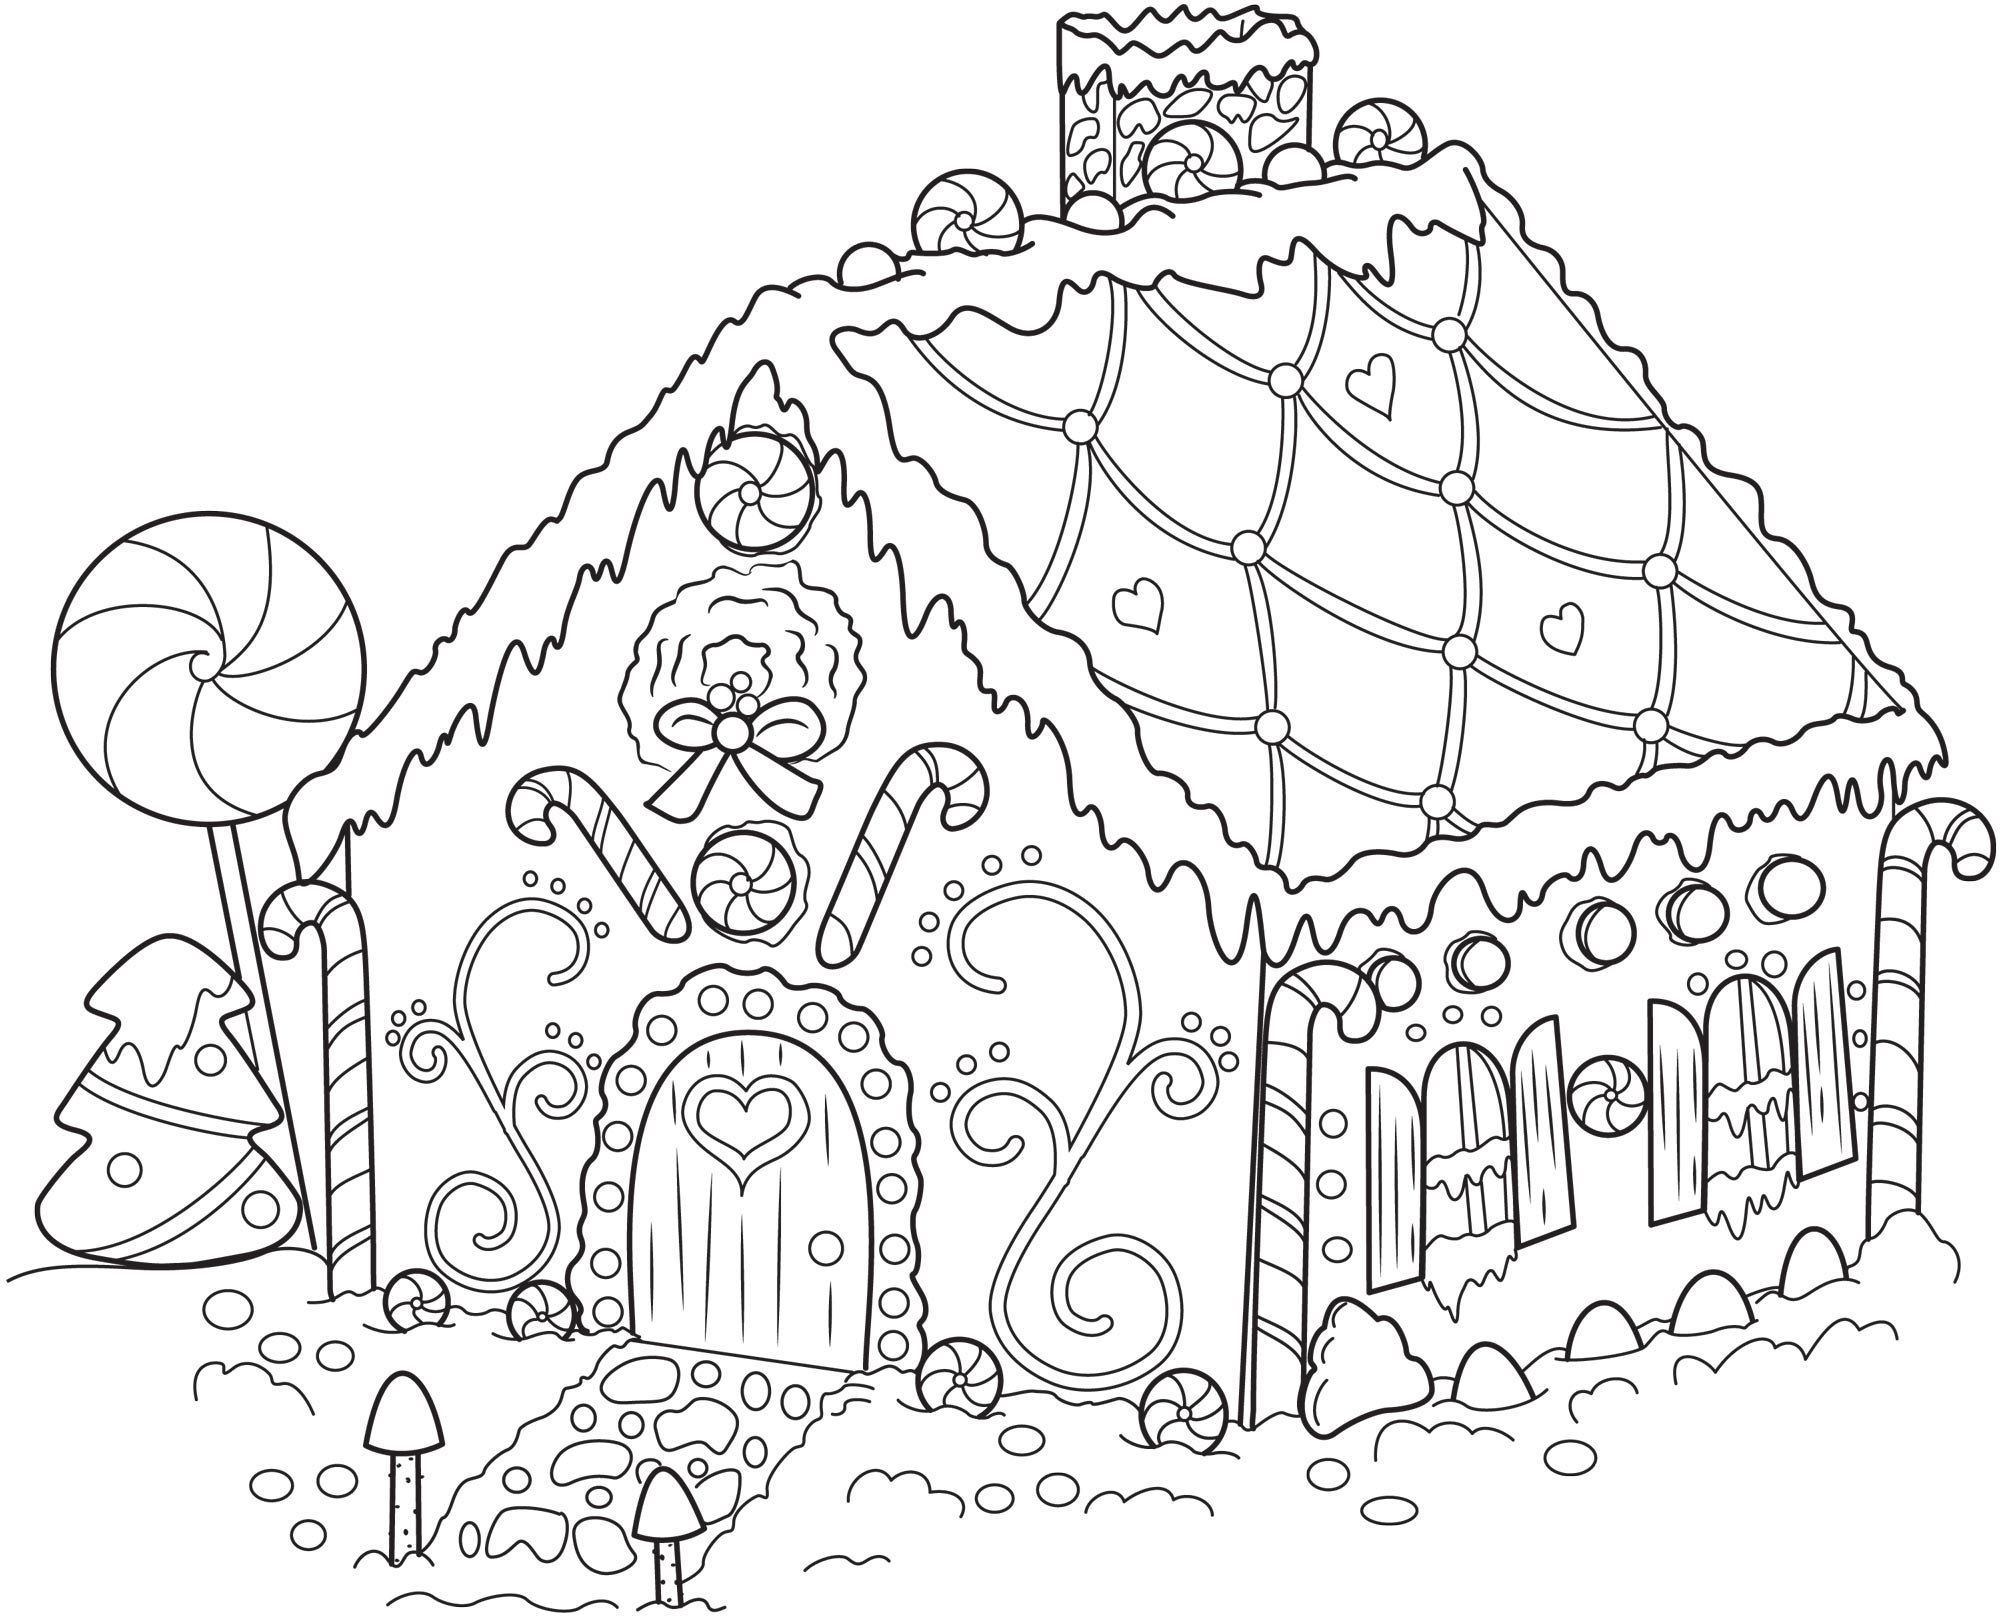 Coloring Pages For Christmas Adults With Awesome Santa Design Free